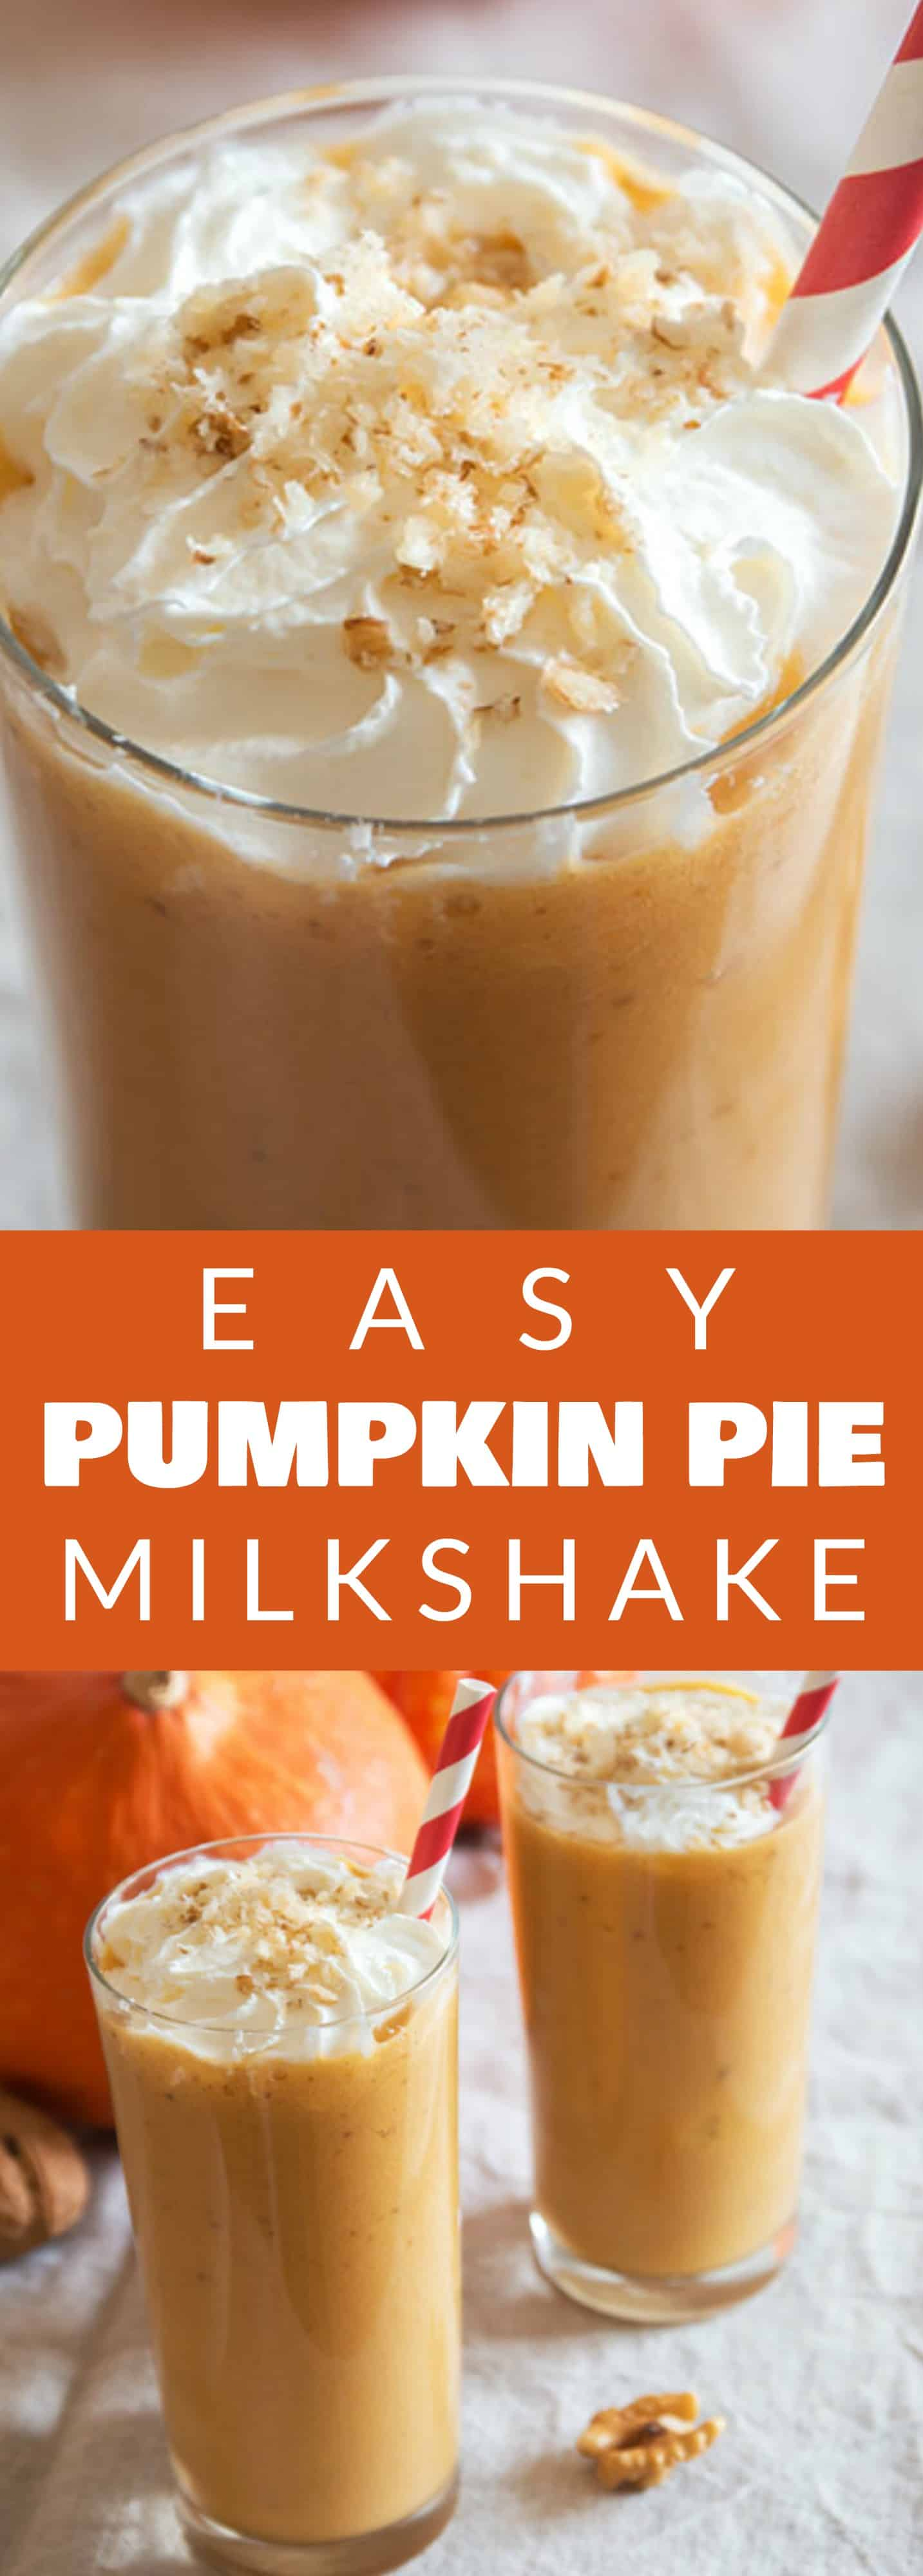 Easy PUMPKIN PIE Milkshake! This easy milkshake recipe uses 1 slice of PUMPKIN PIE to make the BEST tasting pumpkin milkshake! This drink is one of those 4 ingredients desserts, including vanilla ice cream and milk!  It's a perfect Fall Thanksgiving dessert and a great solution if you have leftover pumpkin pie!